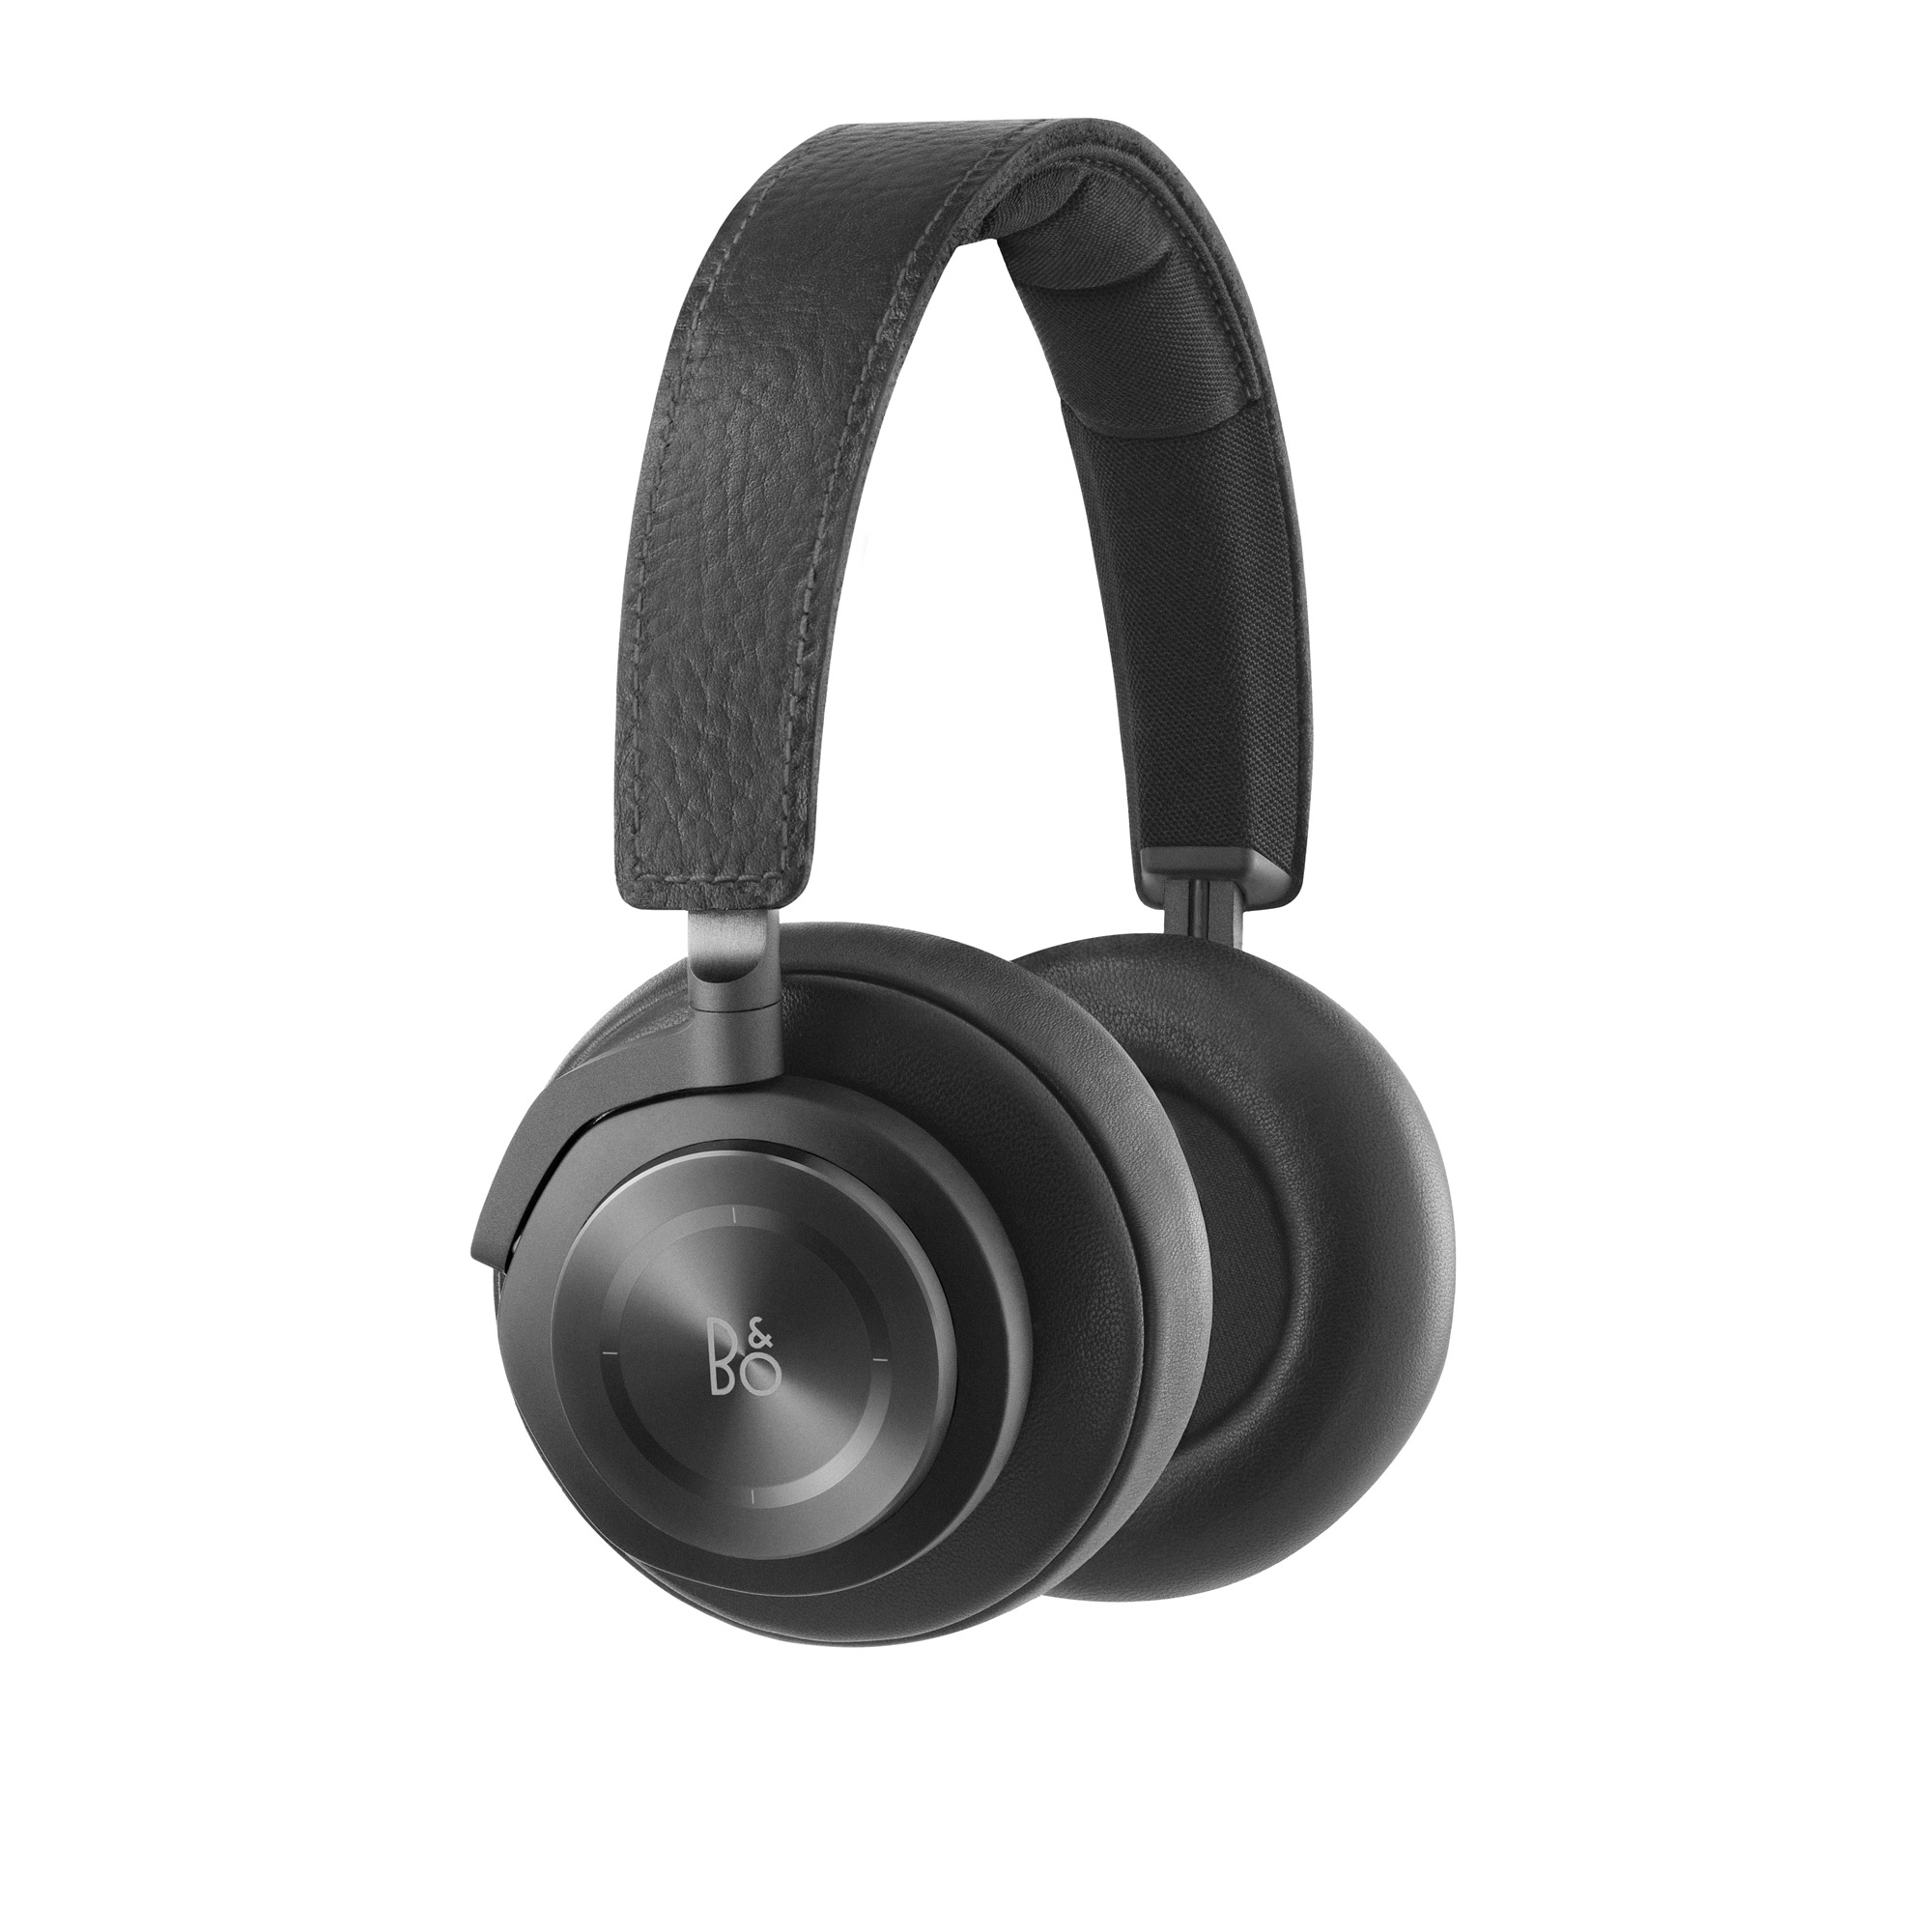 B&O Play รุ่น BeoPlay H7 Black (Without Pouch)